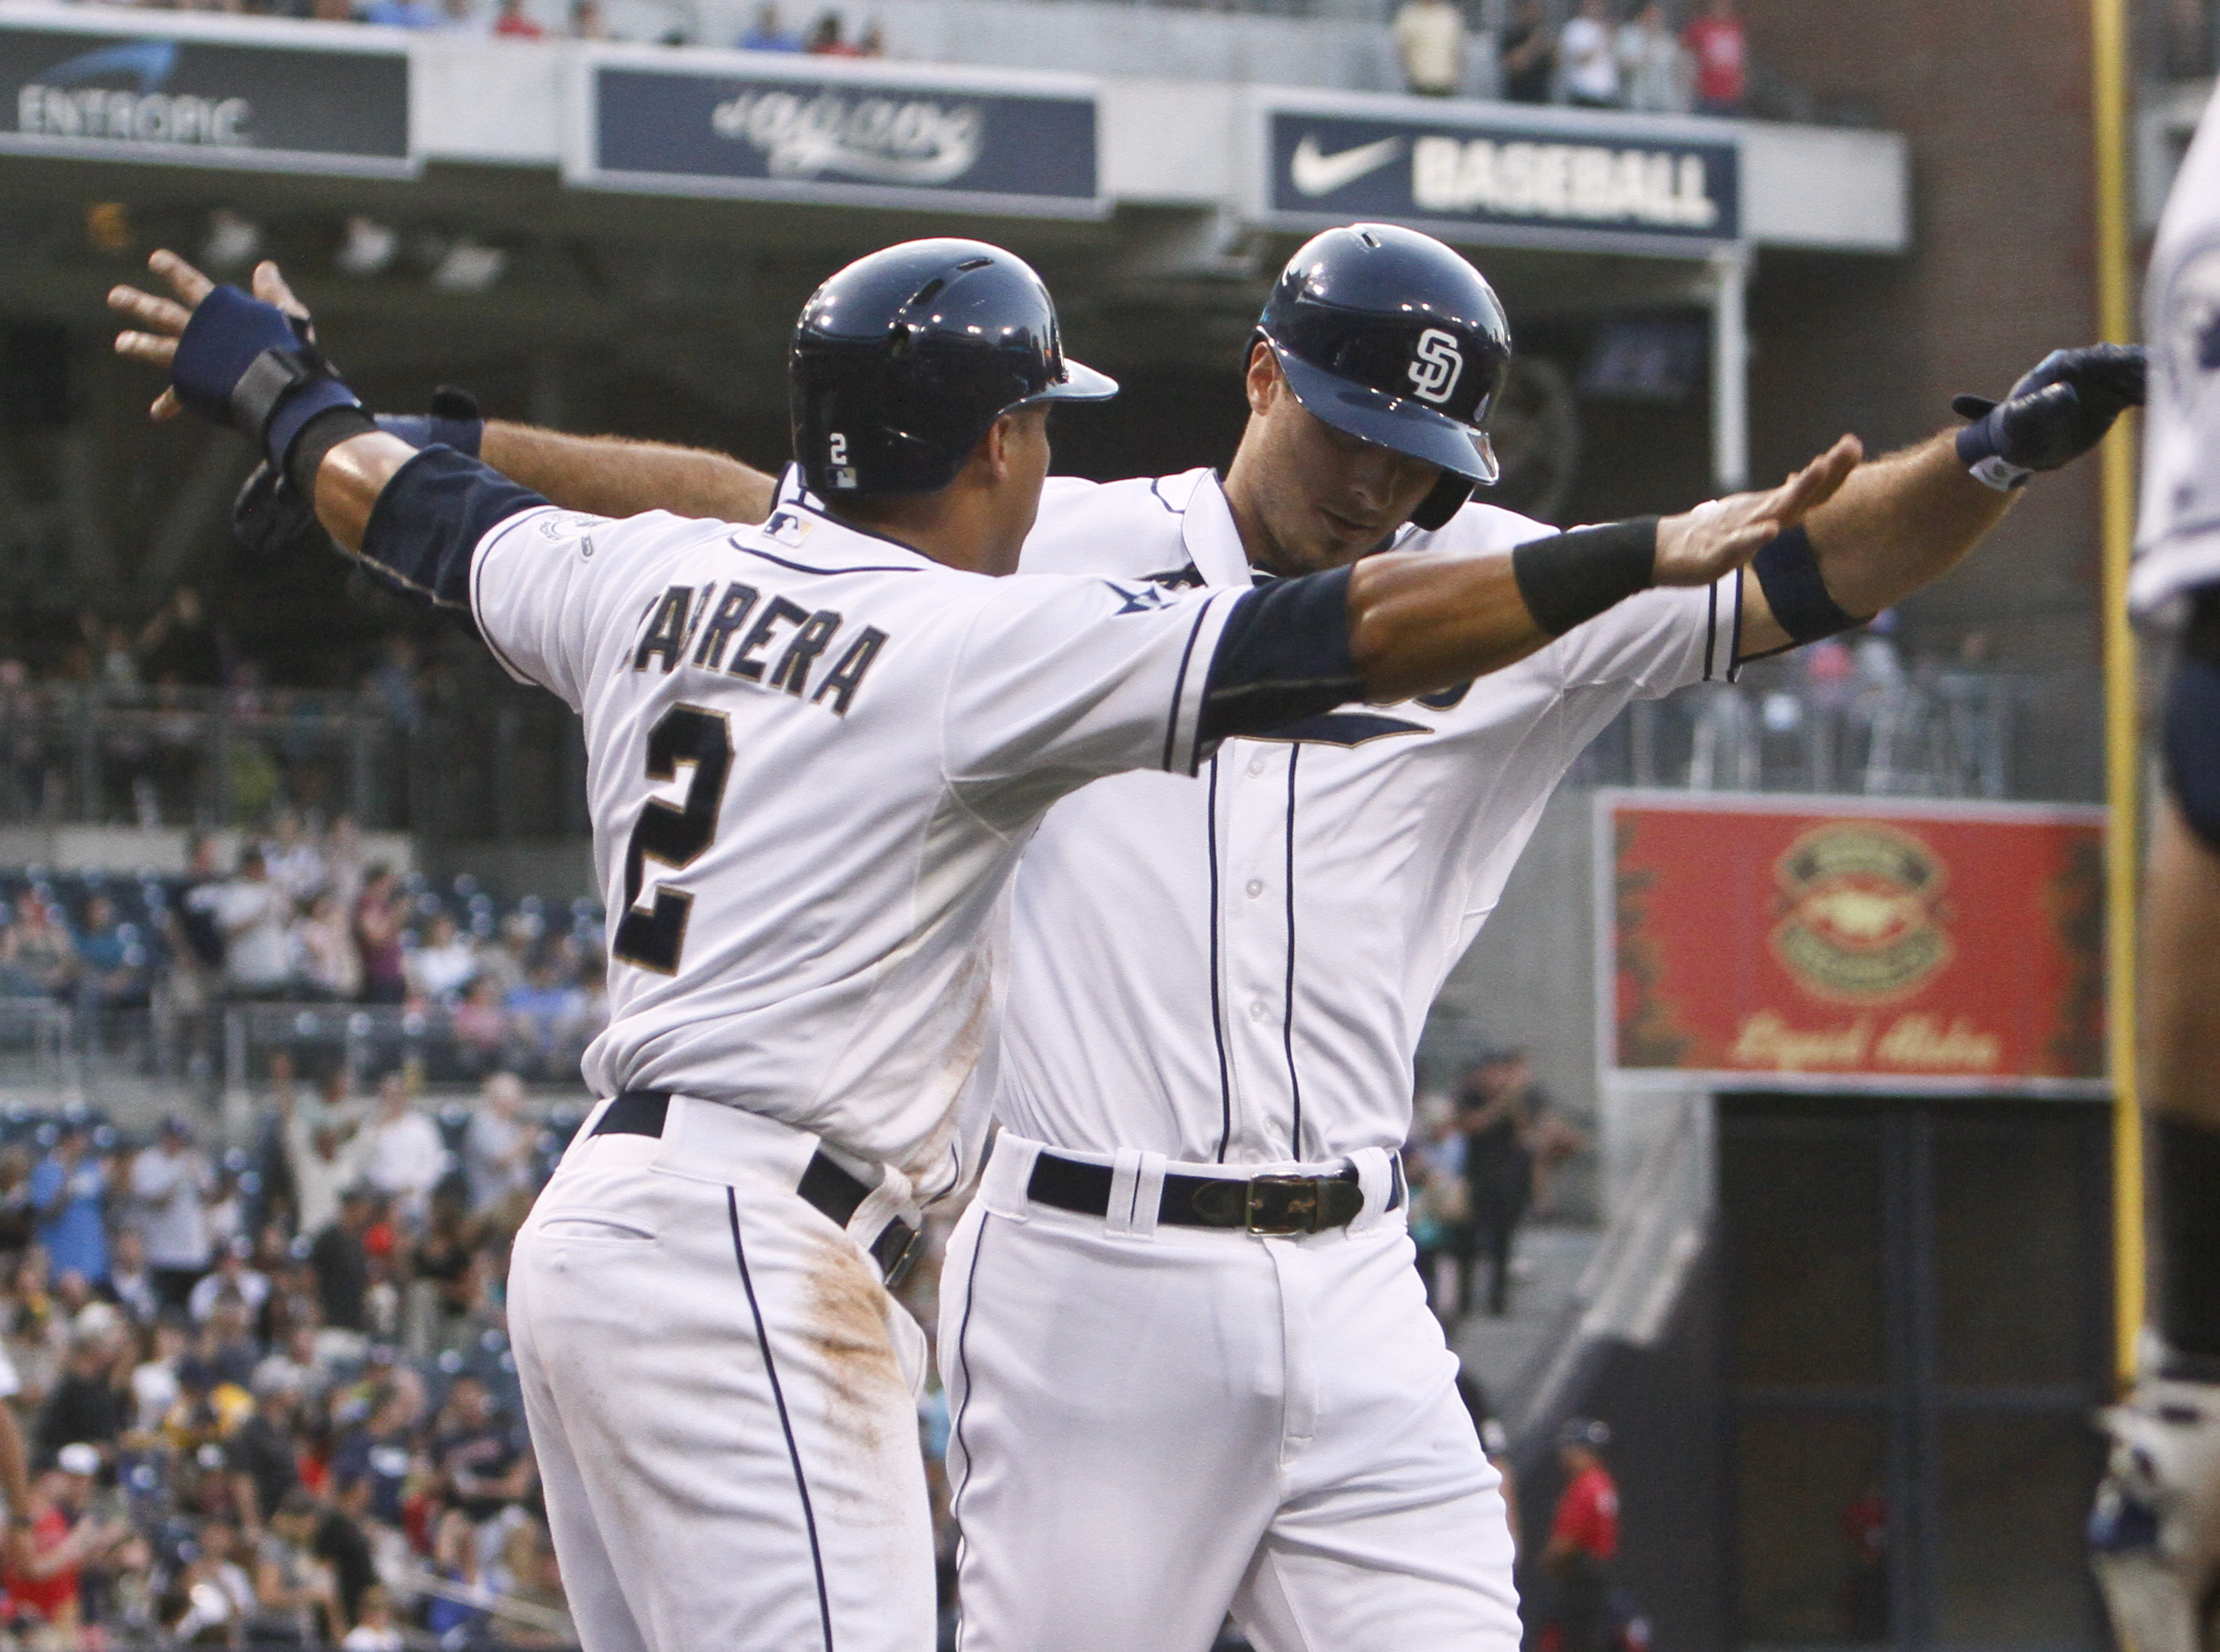 Medica has 5 hits, 2 homers in Padres' 10-1 win